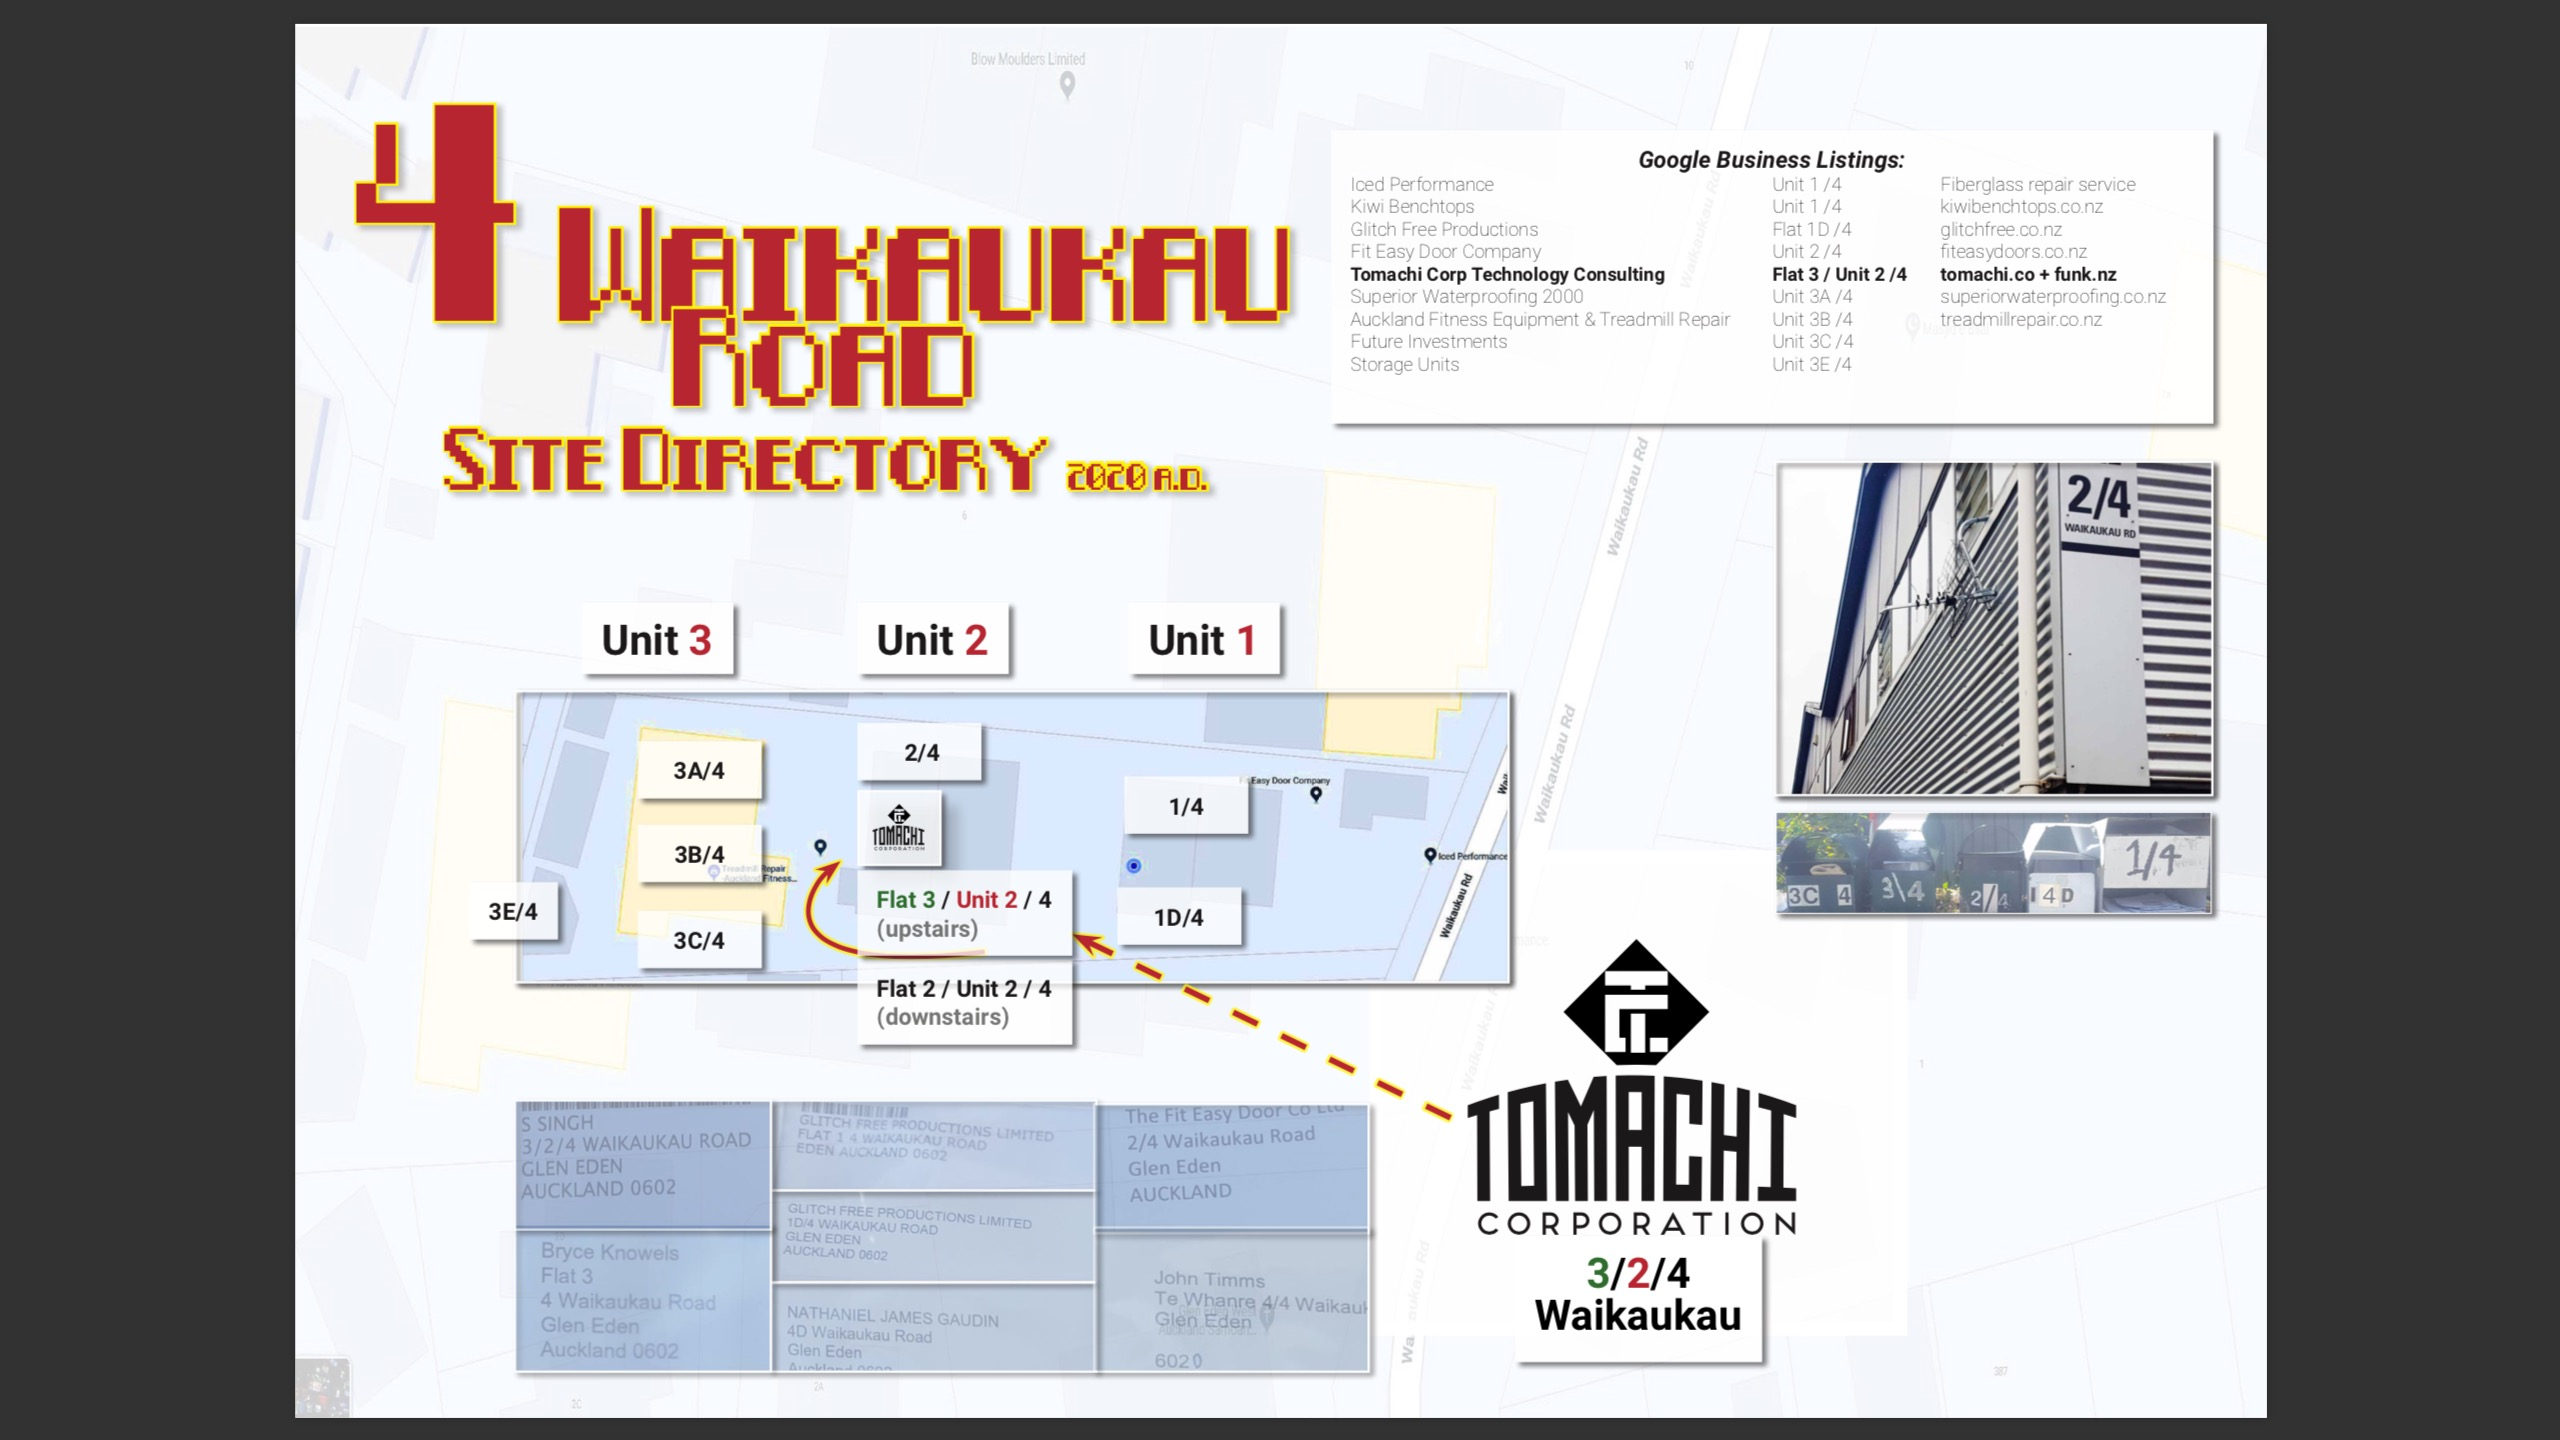 4 Waikaukau road site map and business directory